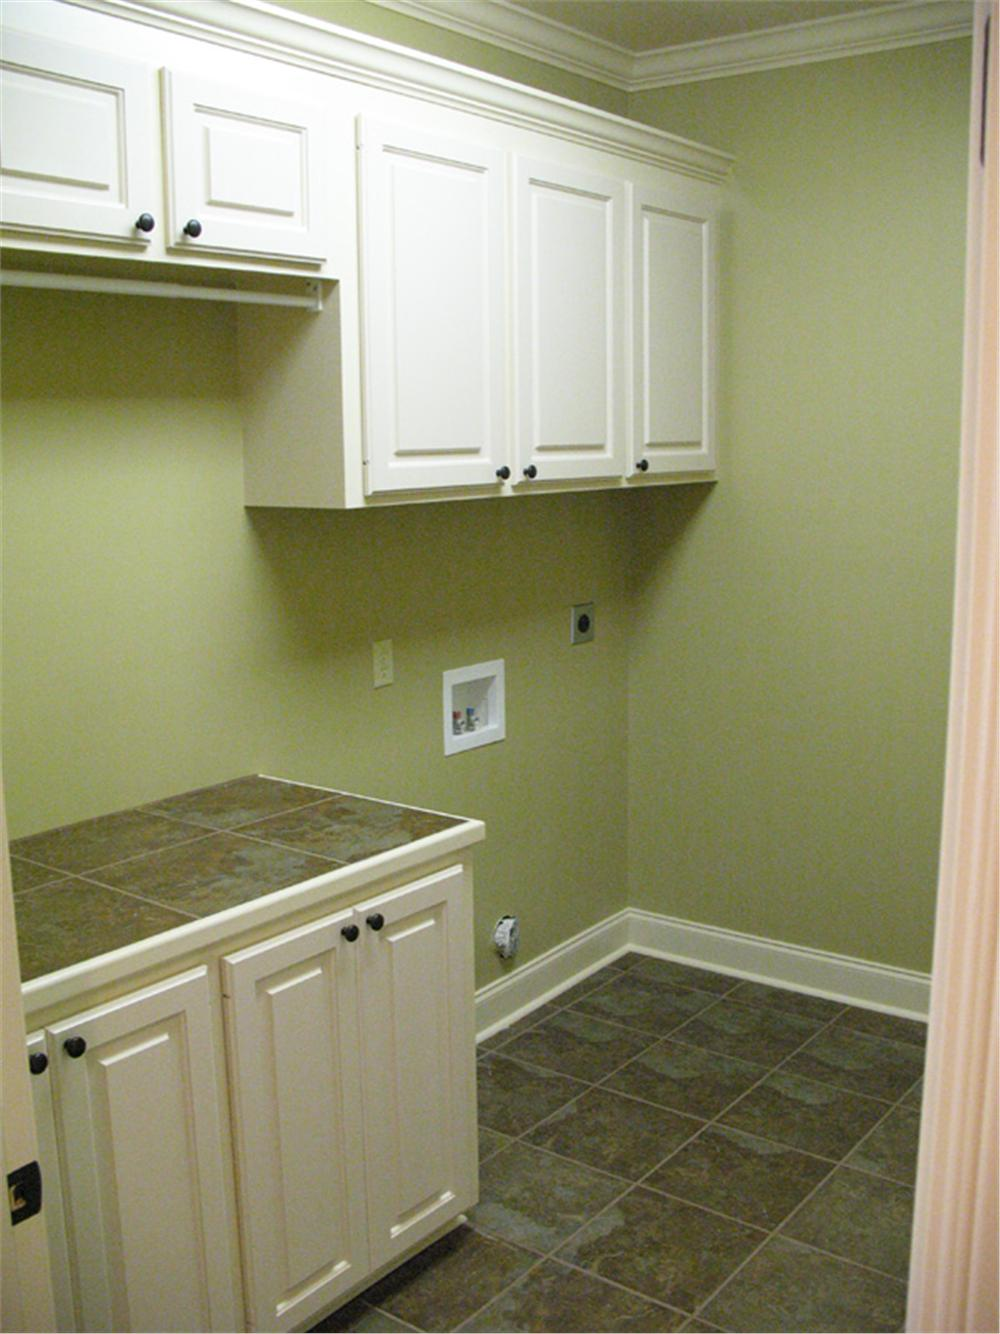 141-1237 house plan utility room